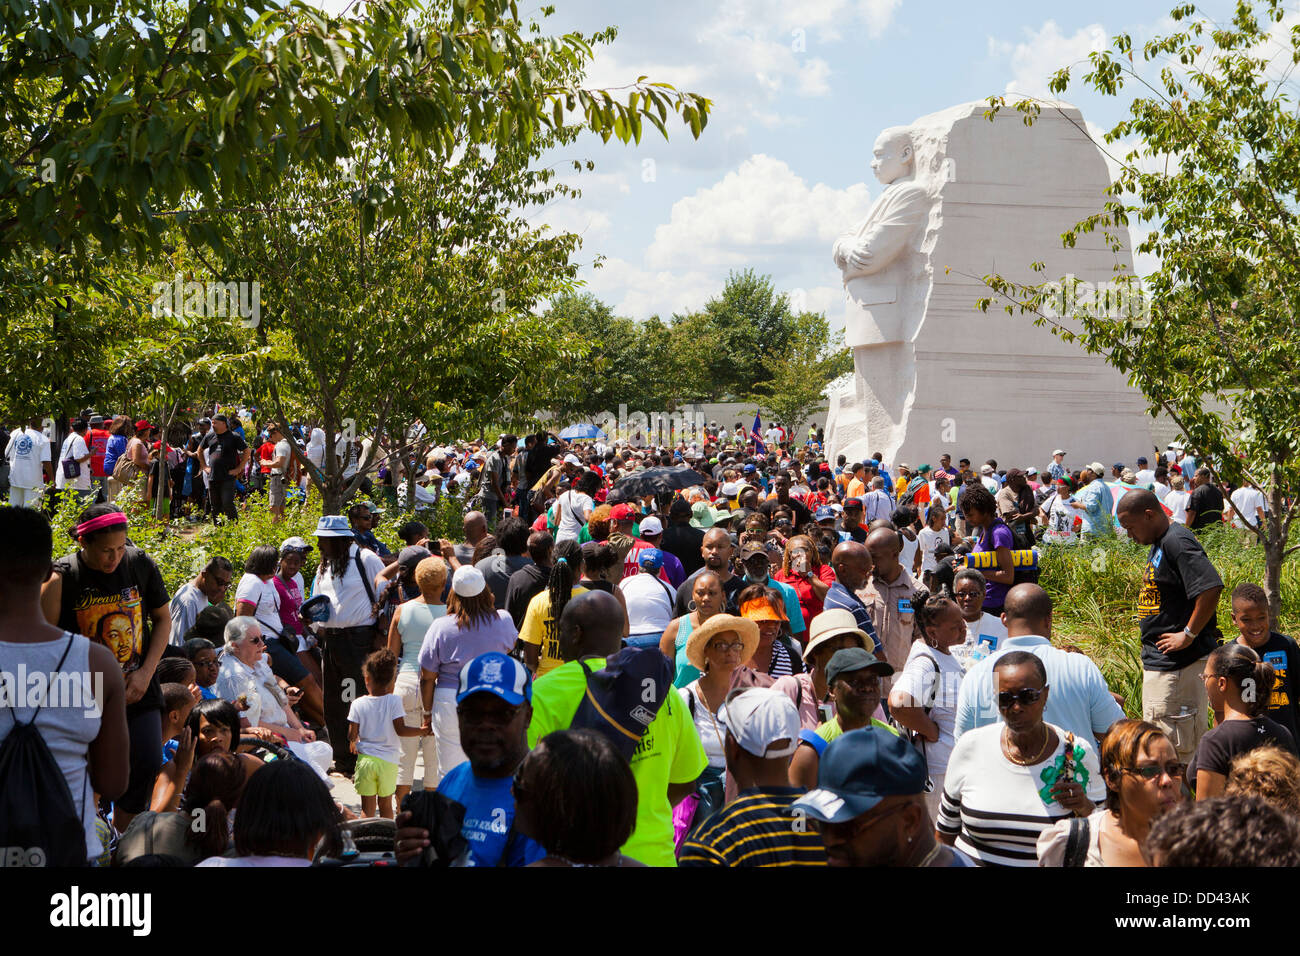 Large crowd of people at the Martin Luther King Memorial - Washington DC - Stock Image